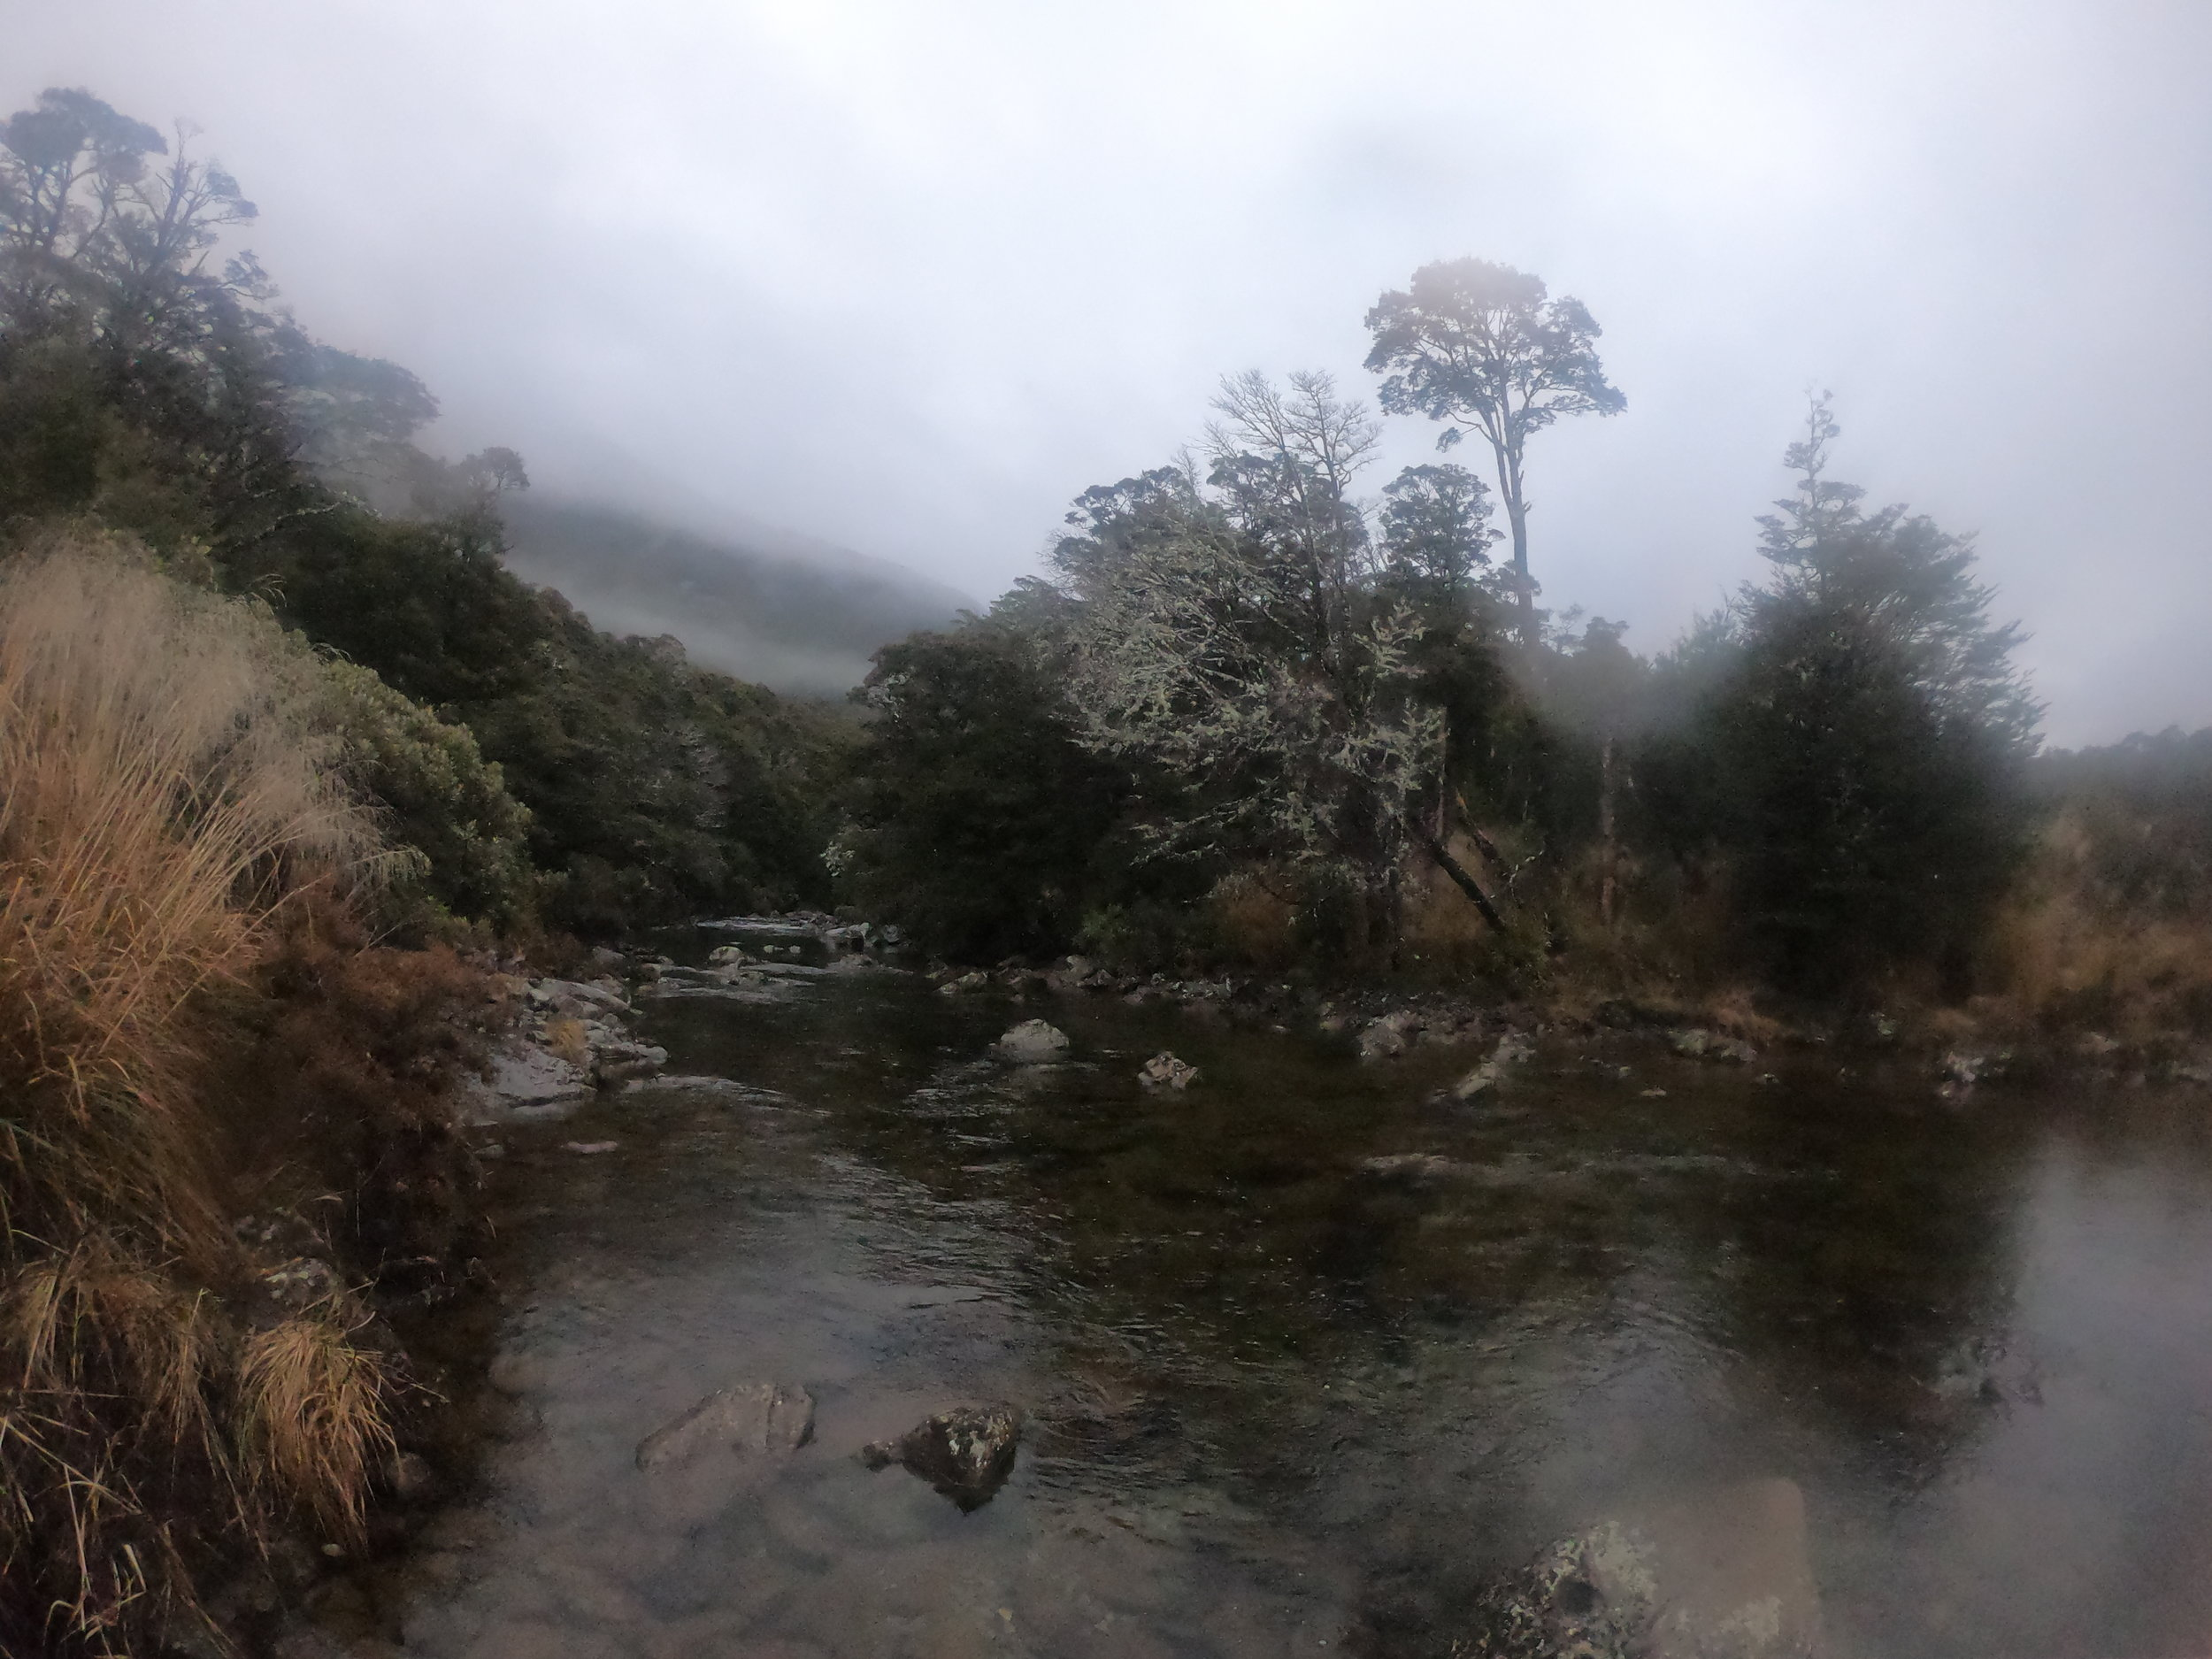 Winter is the best time to visit the local Kahurangi National park - not only is it basically empty but the forest provides good shelter from the weather - and that weather provides the best scenes.